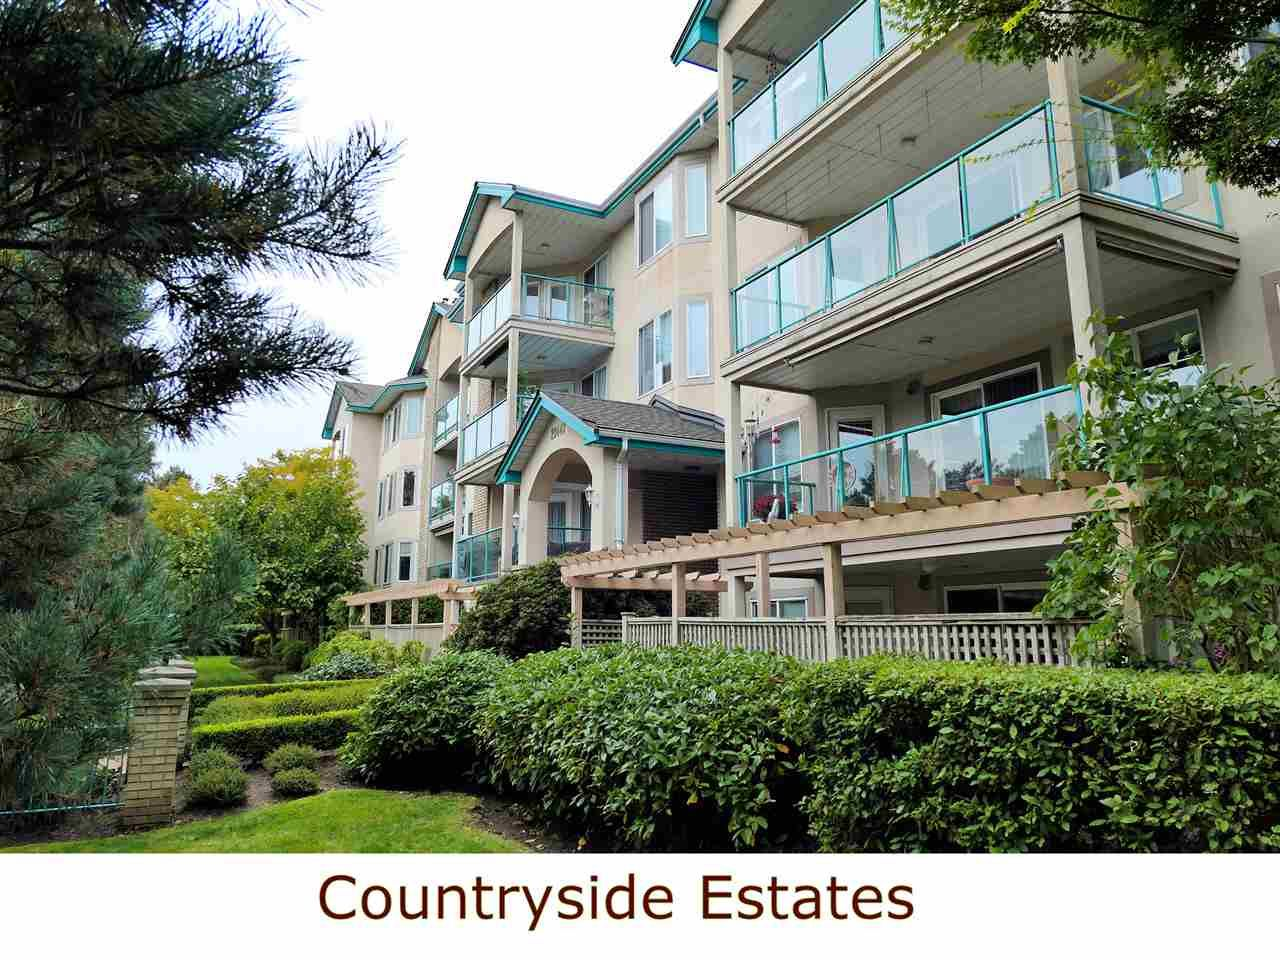 """Main Photo: 205 20443 53RD Avenue in Langley: Langley City Condo for sale in """"Countryside Estates"""" : MLS®# R2408980"""